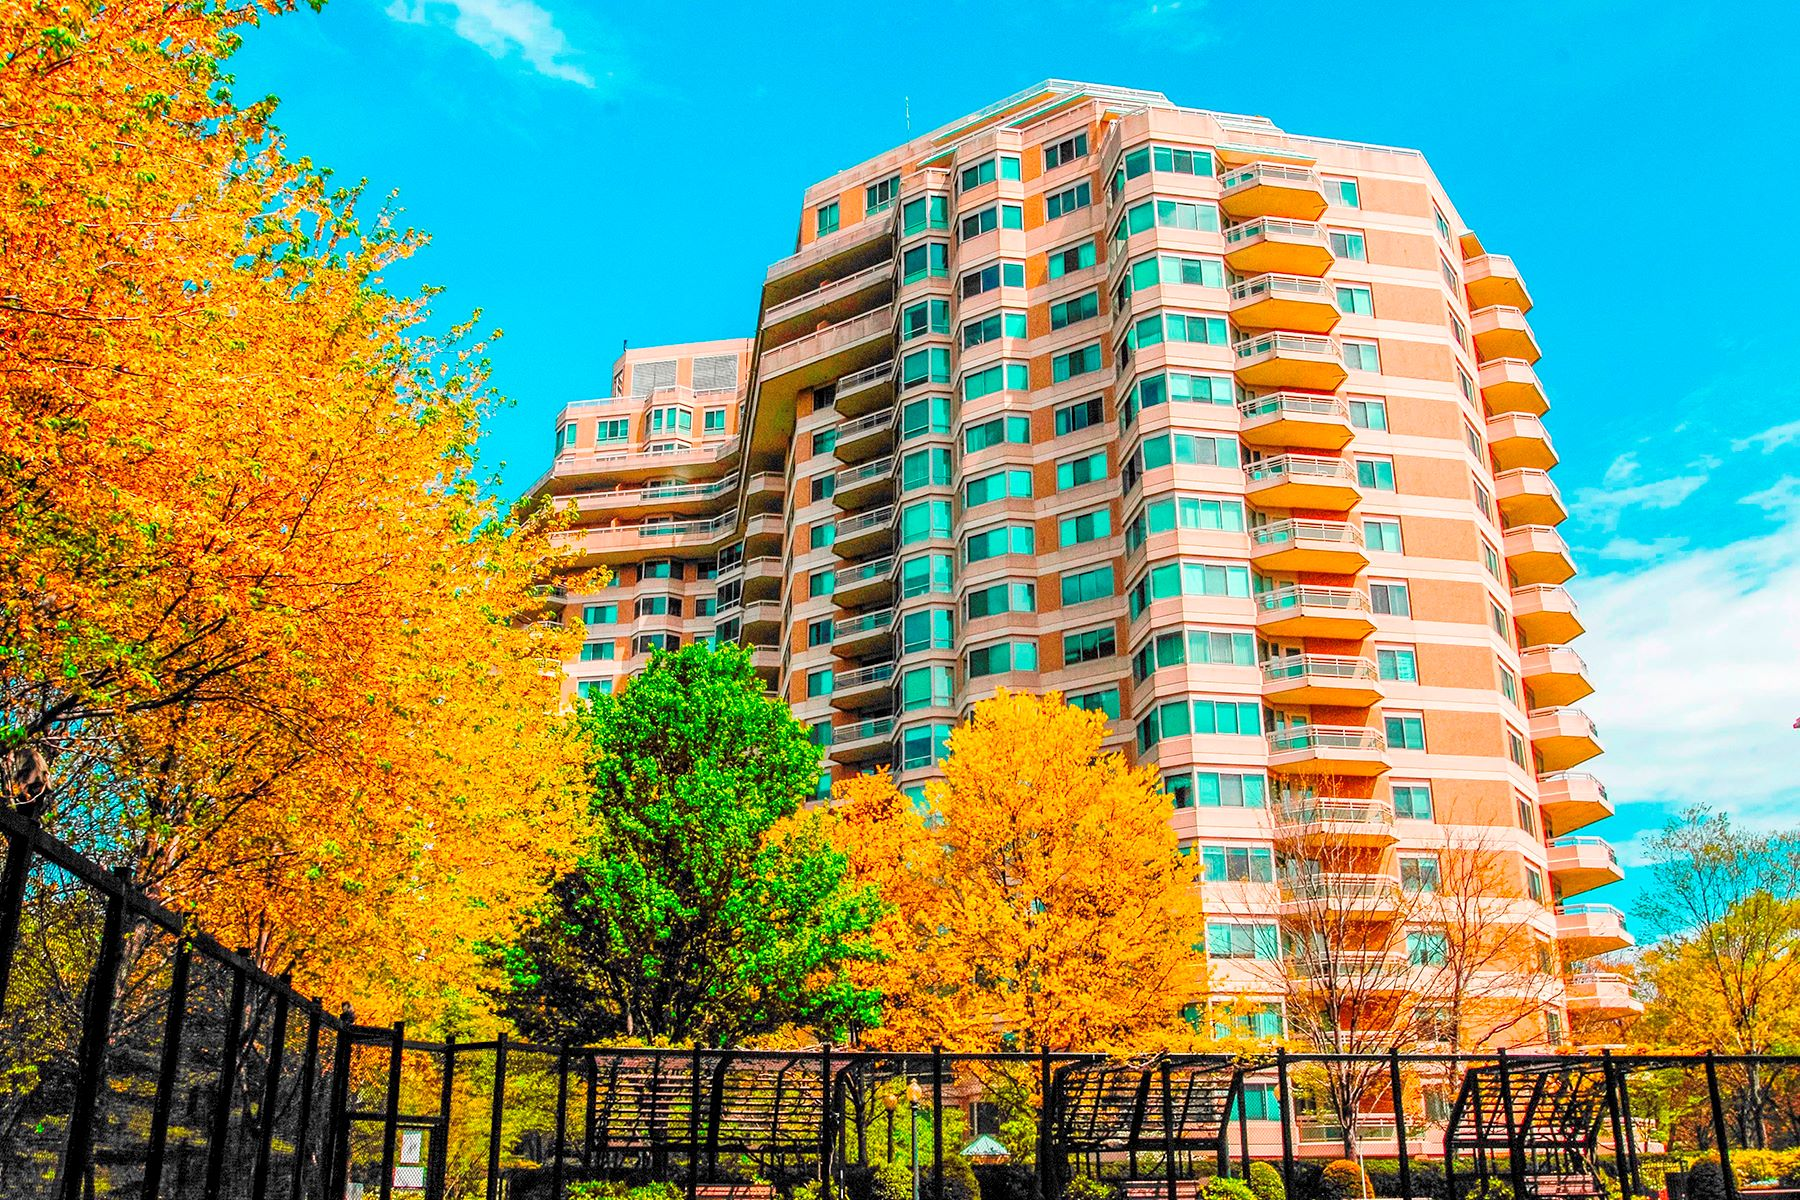 Condominio por un Venta en 5600 Wisconsin Avenue 1103,1104, Chevy Chase 5600 Wisconsin Ave 1103,1104 Chevy Chase, Maryland, 20815 Estados Unidos